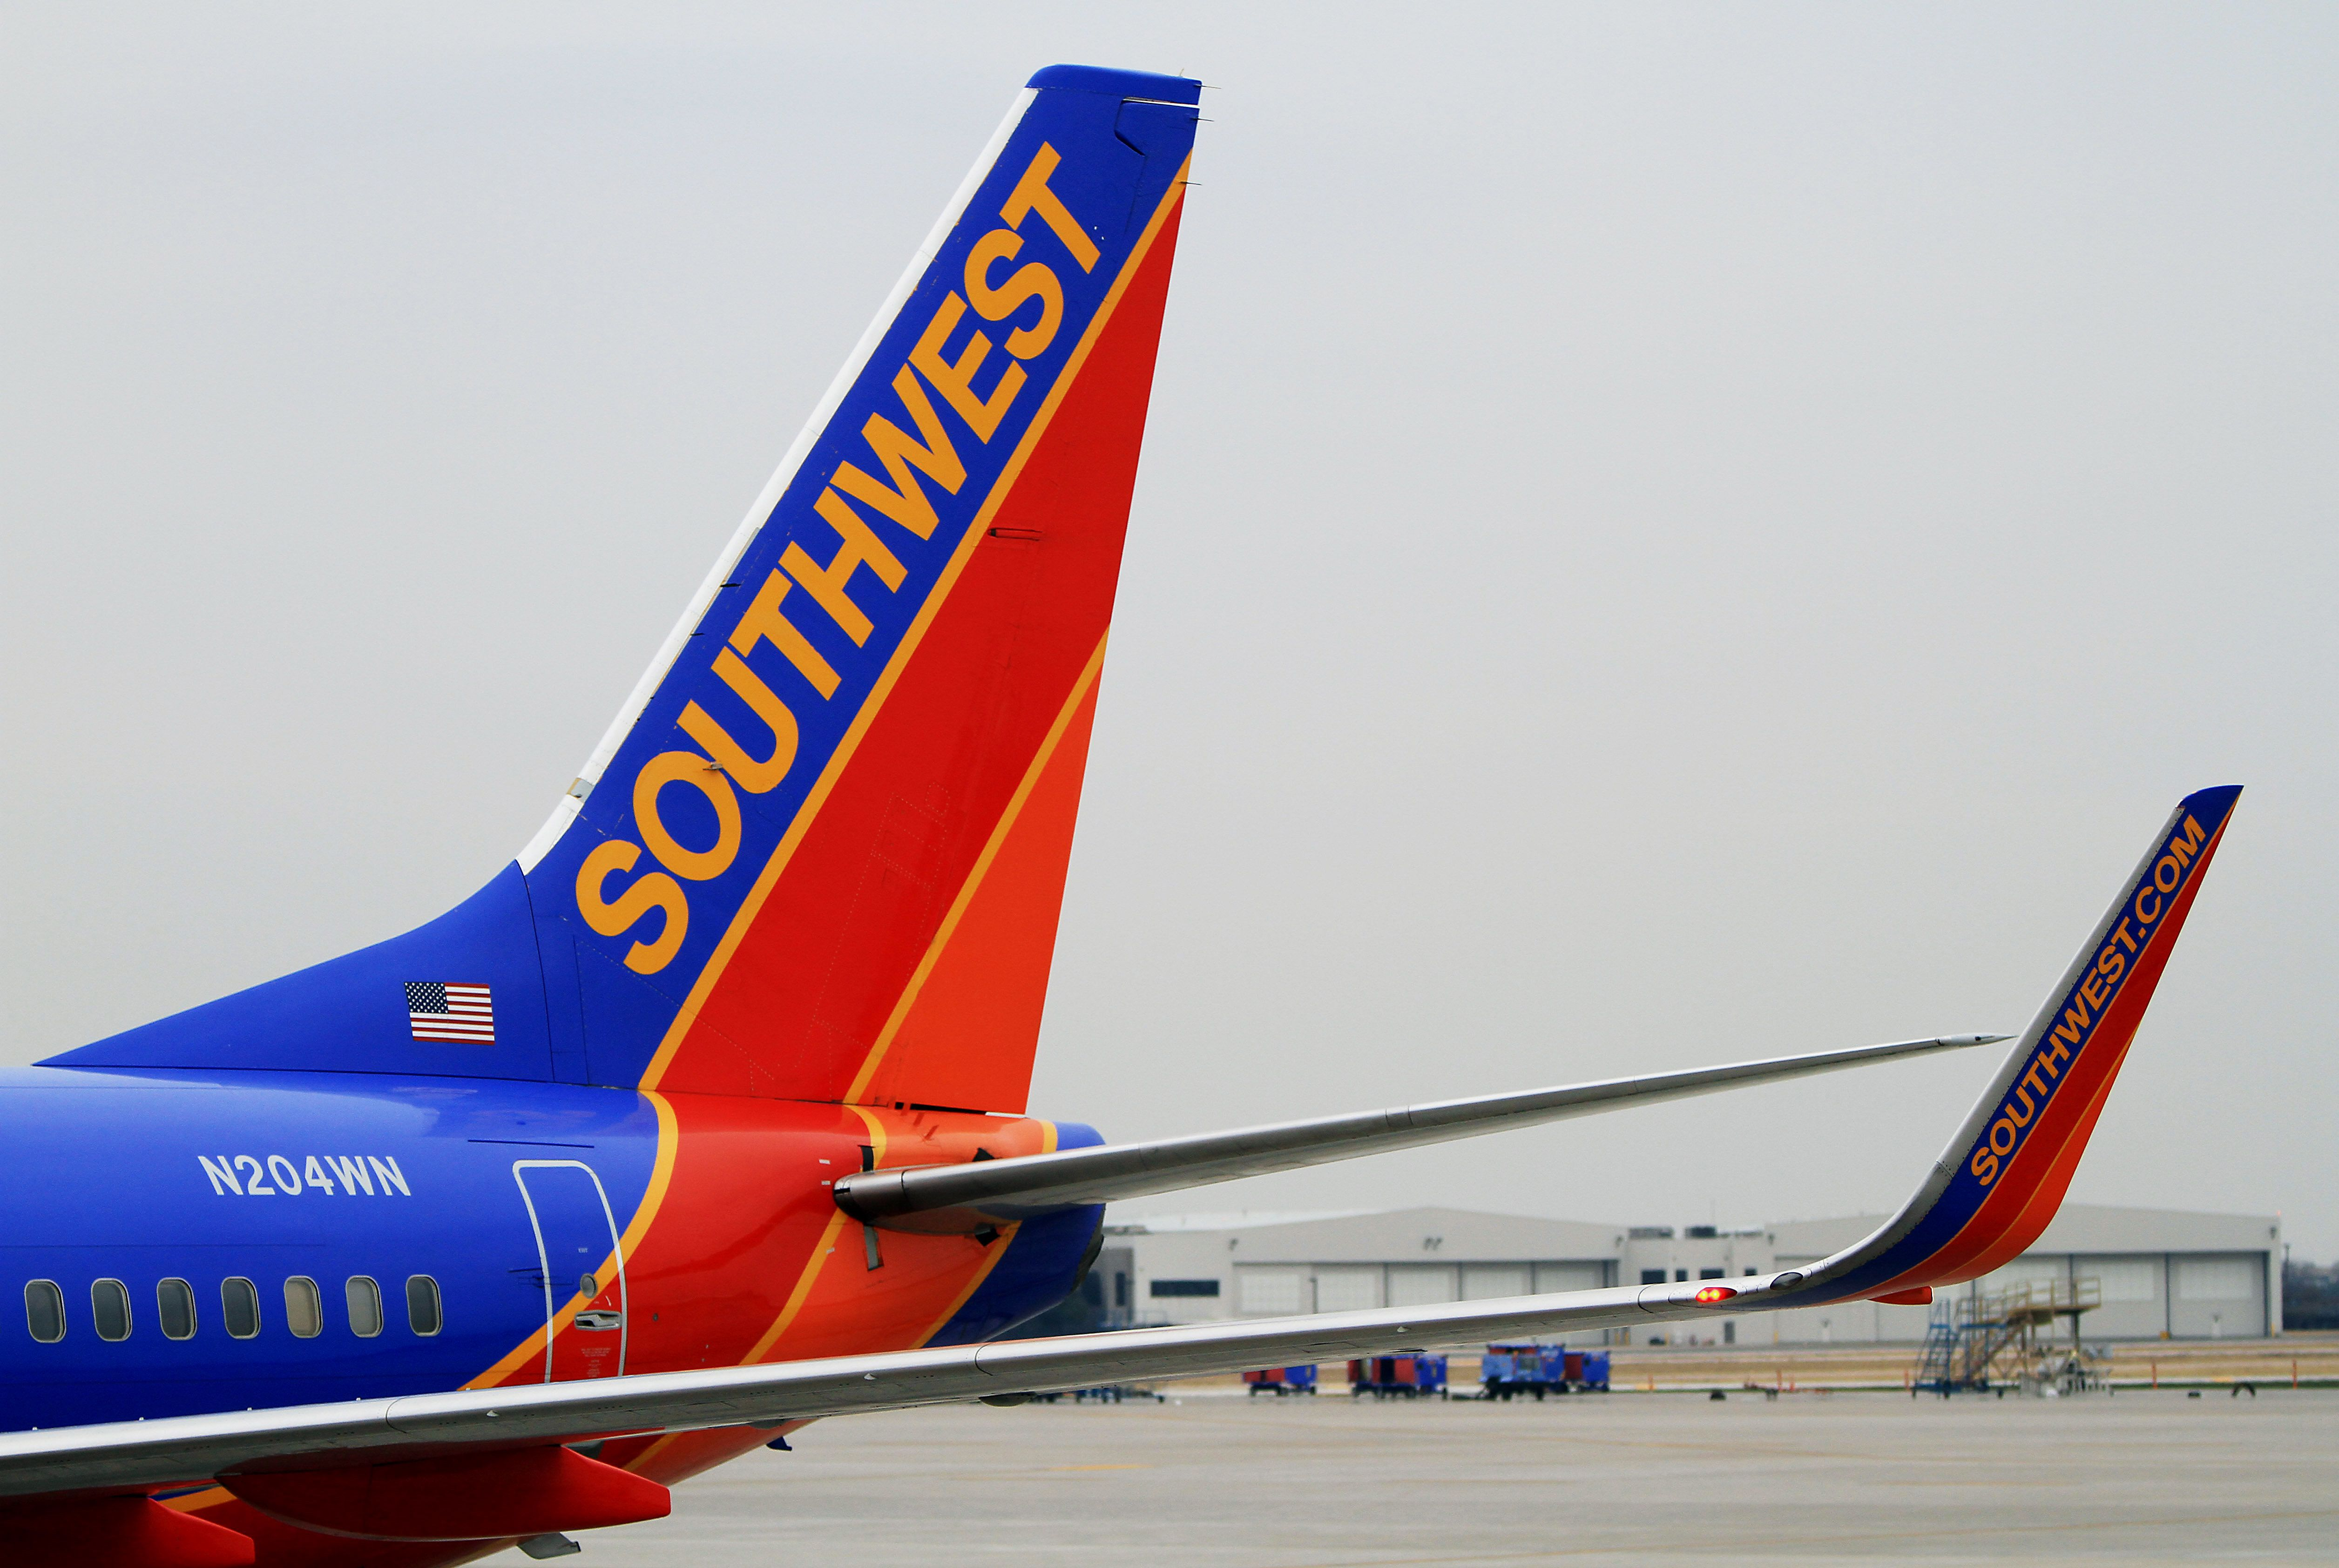 A Southwest Airlines Co. Boeing 737-7H4 plane sits at a gate at Dallas Love Field Airport in Dallas, Texas, U.S., on Monday, Feb. 3, 2014. Southwest Airlines Co., the largest domestic carrier, will begin flying to 15 new destinations from Dallas Love Field when flight restrictions at the airport closest to downtown end in October. Photographer Ben Torres/Bloomberg via Getty Images